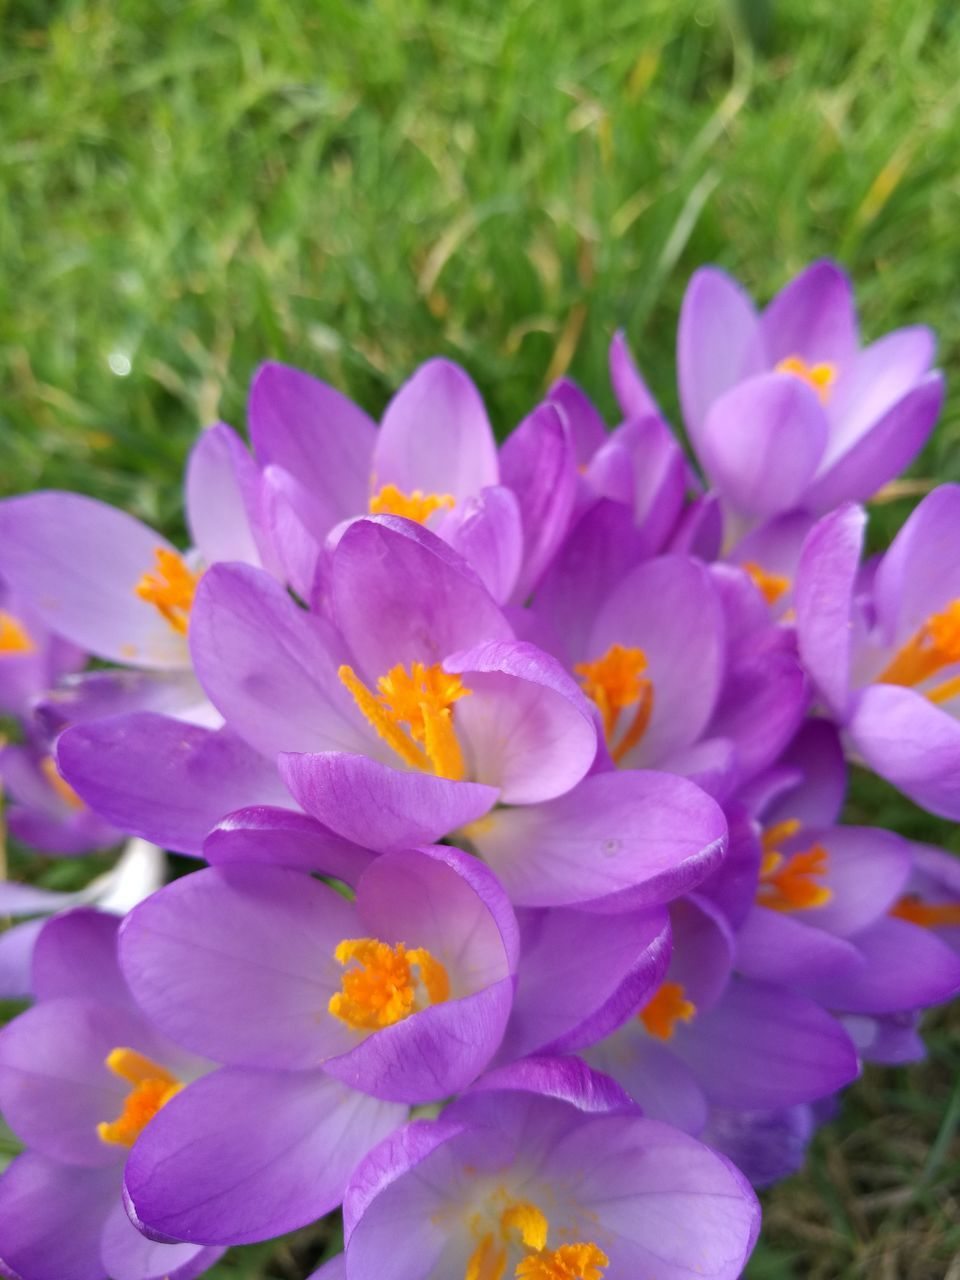 flower, nature, beauty in nature, plant, growth, petal, delicate, field, freshness, blooming, no people, outdoors, grass, fragility, day, close-up, flower head, crocus